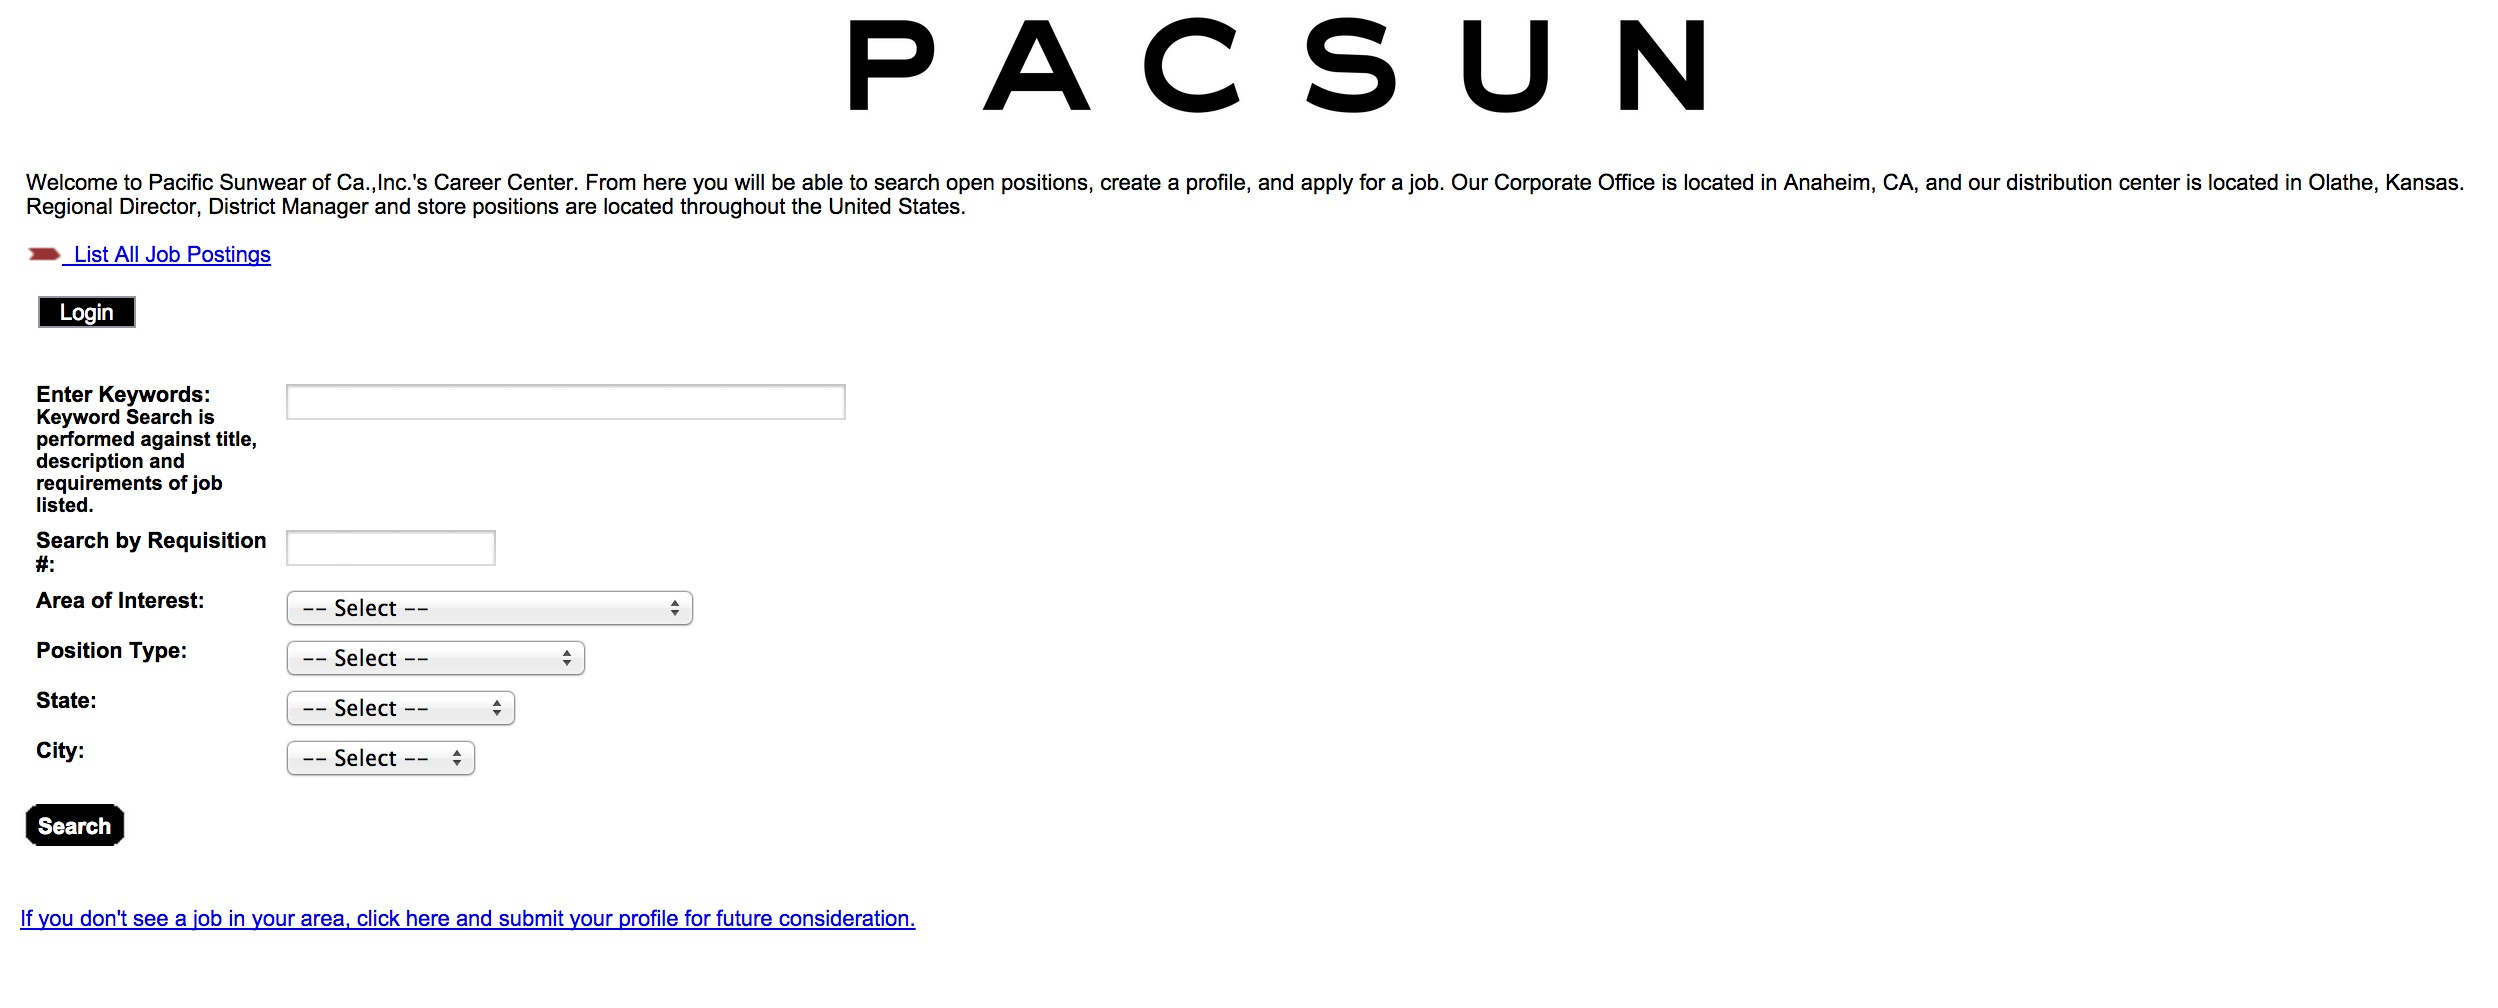 pacsun job application form pdf template wiki pacsun online job postings page